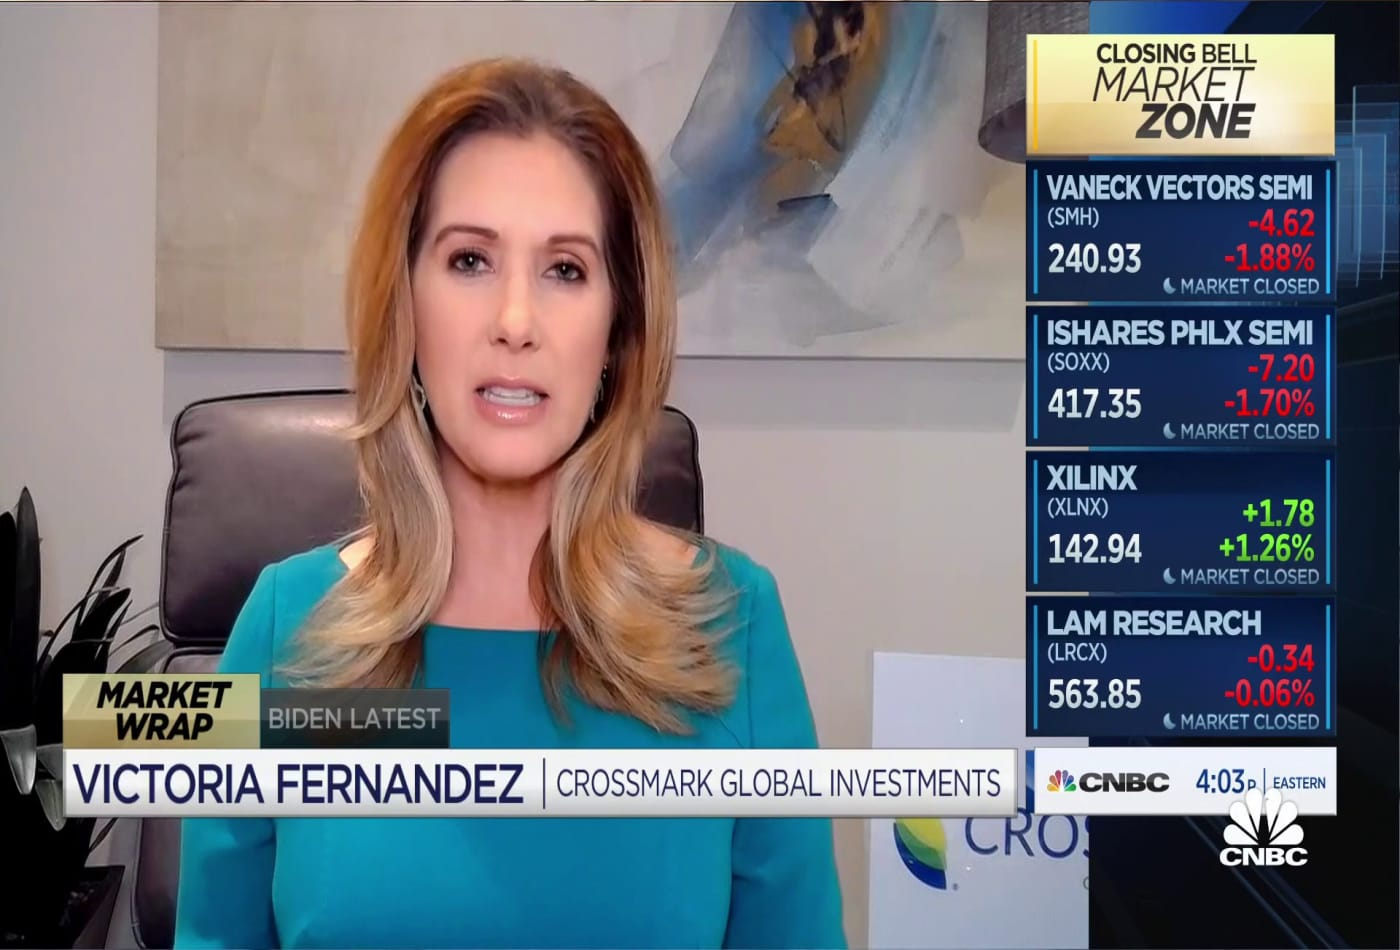 Victoria Fernandez warns there may be pullback in US equities